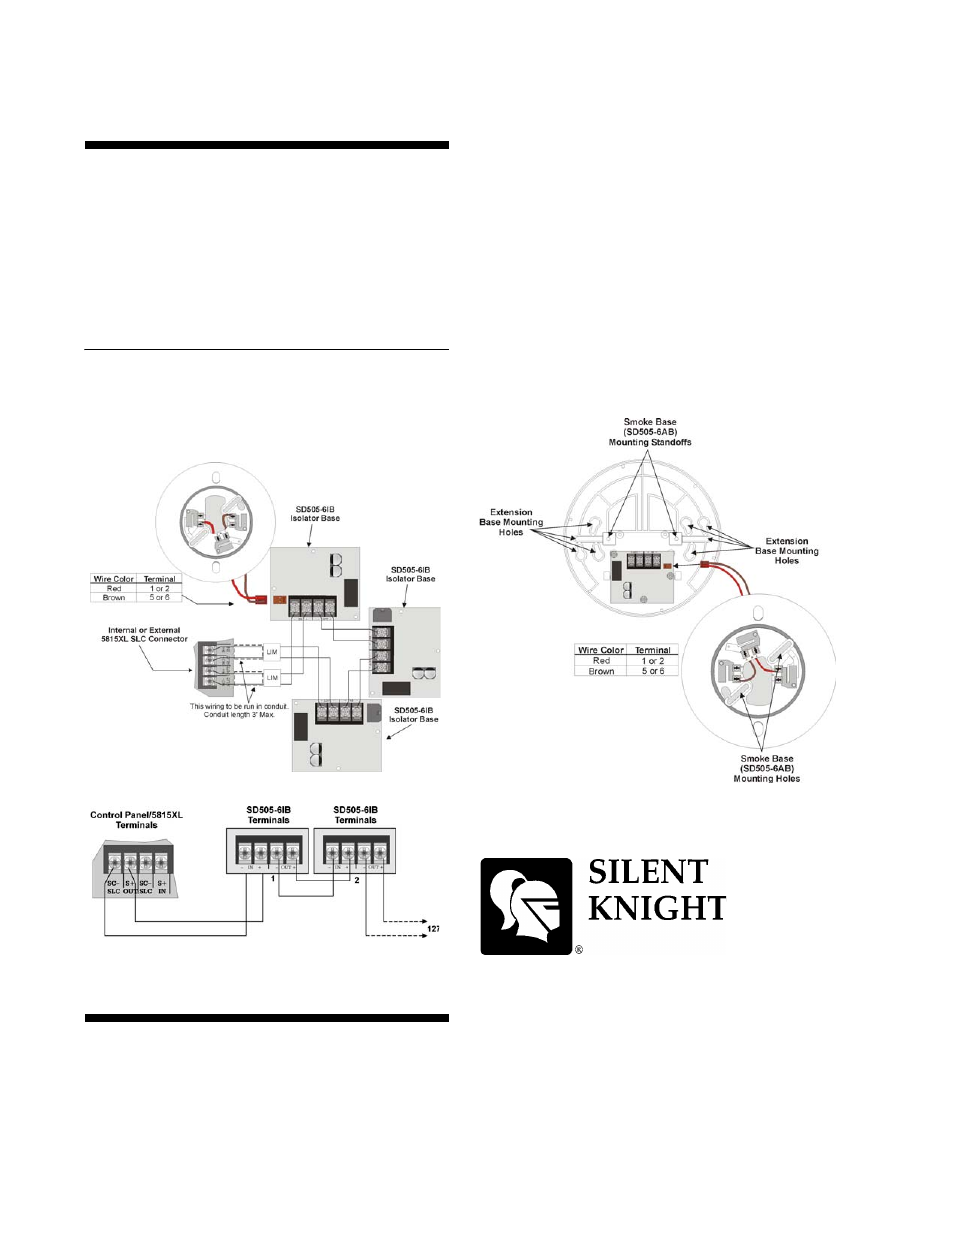 silentknight sd505 6ib 6 isolator base page2 100 [ notifier intelligent control panel slc wiring manual sd505-6ab wiring diagram at gsmx.co